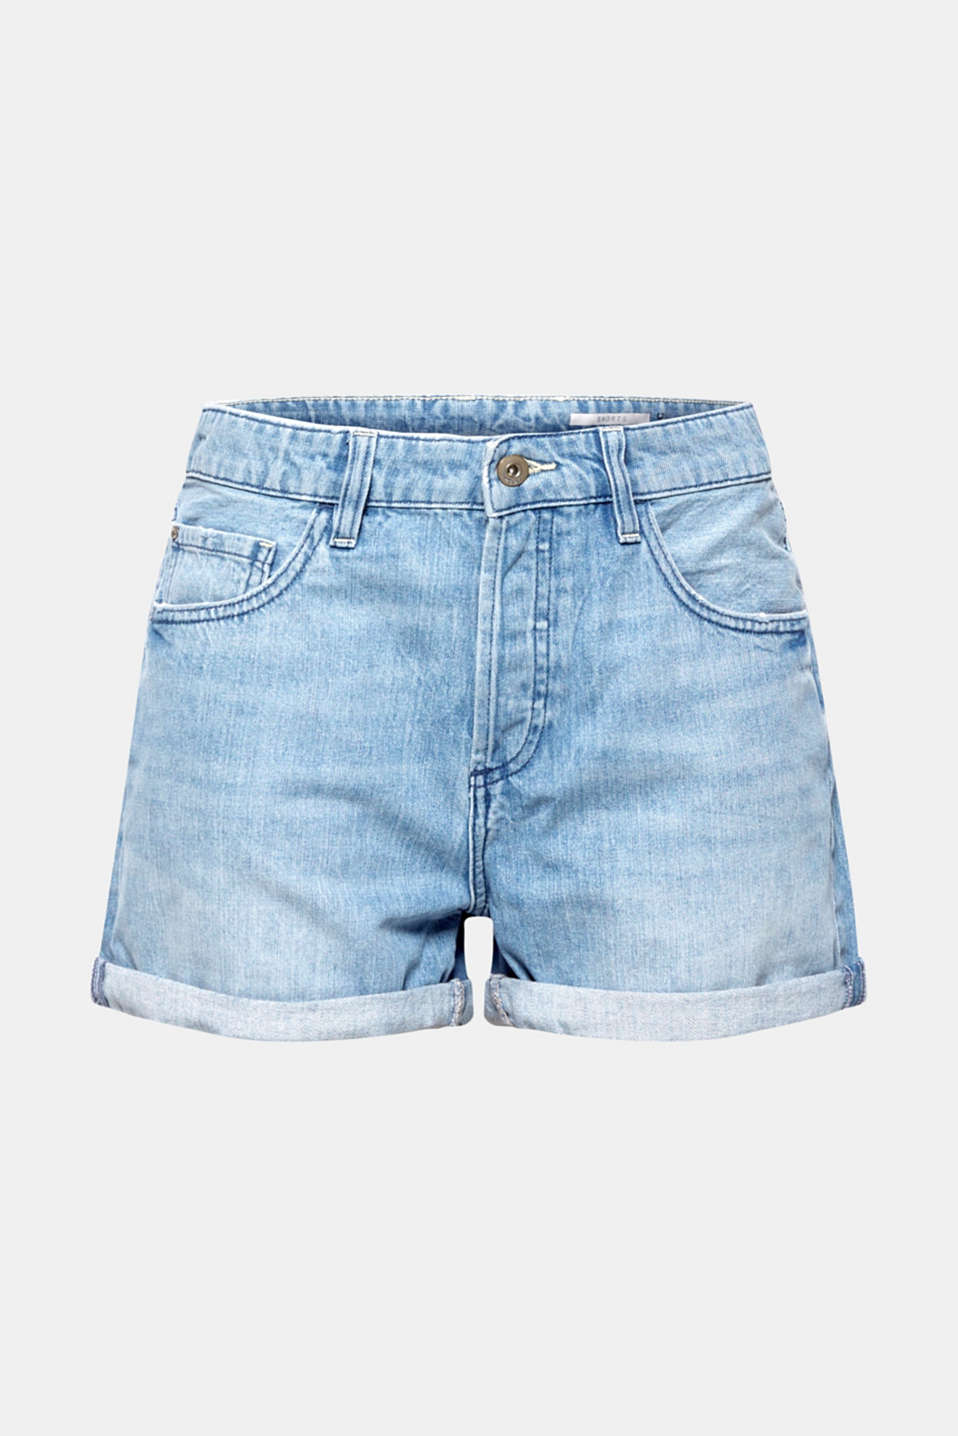 Denim shorts with button placket, 100% cotton, BLUE LIGHT WASH, detail image number 8